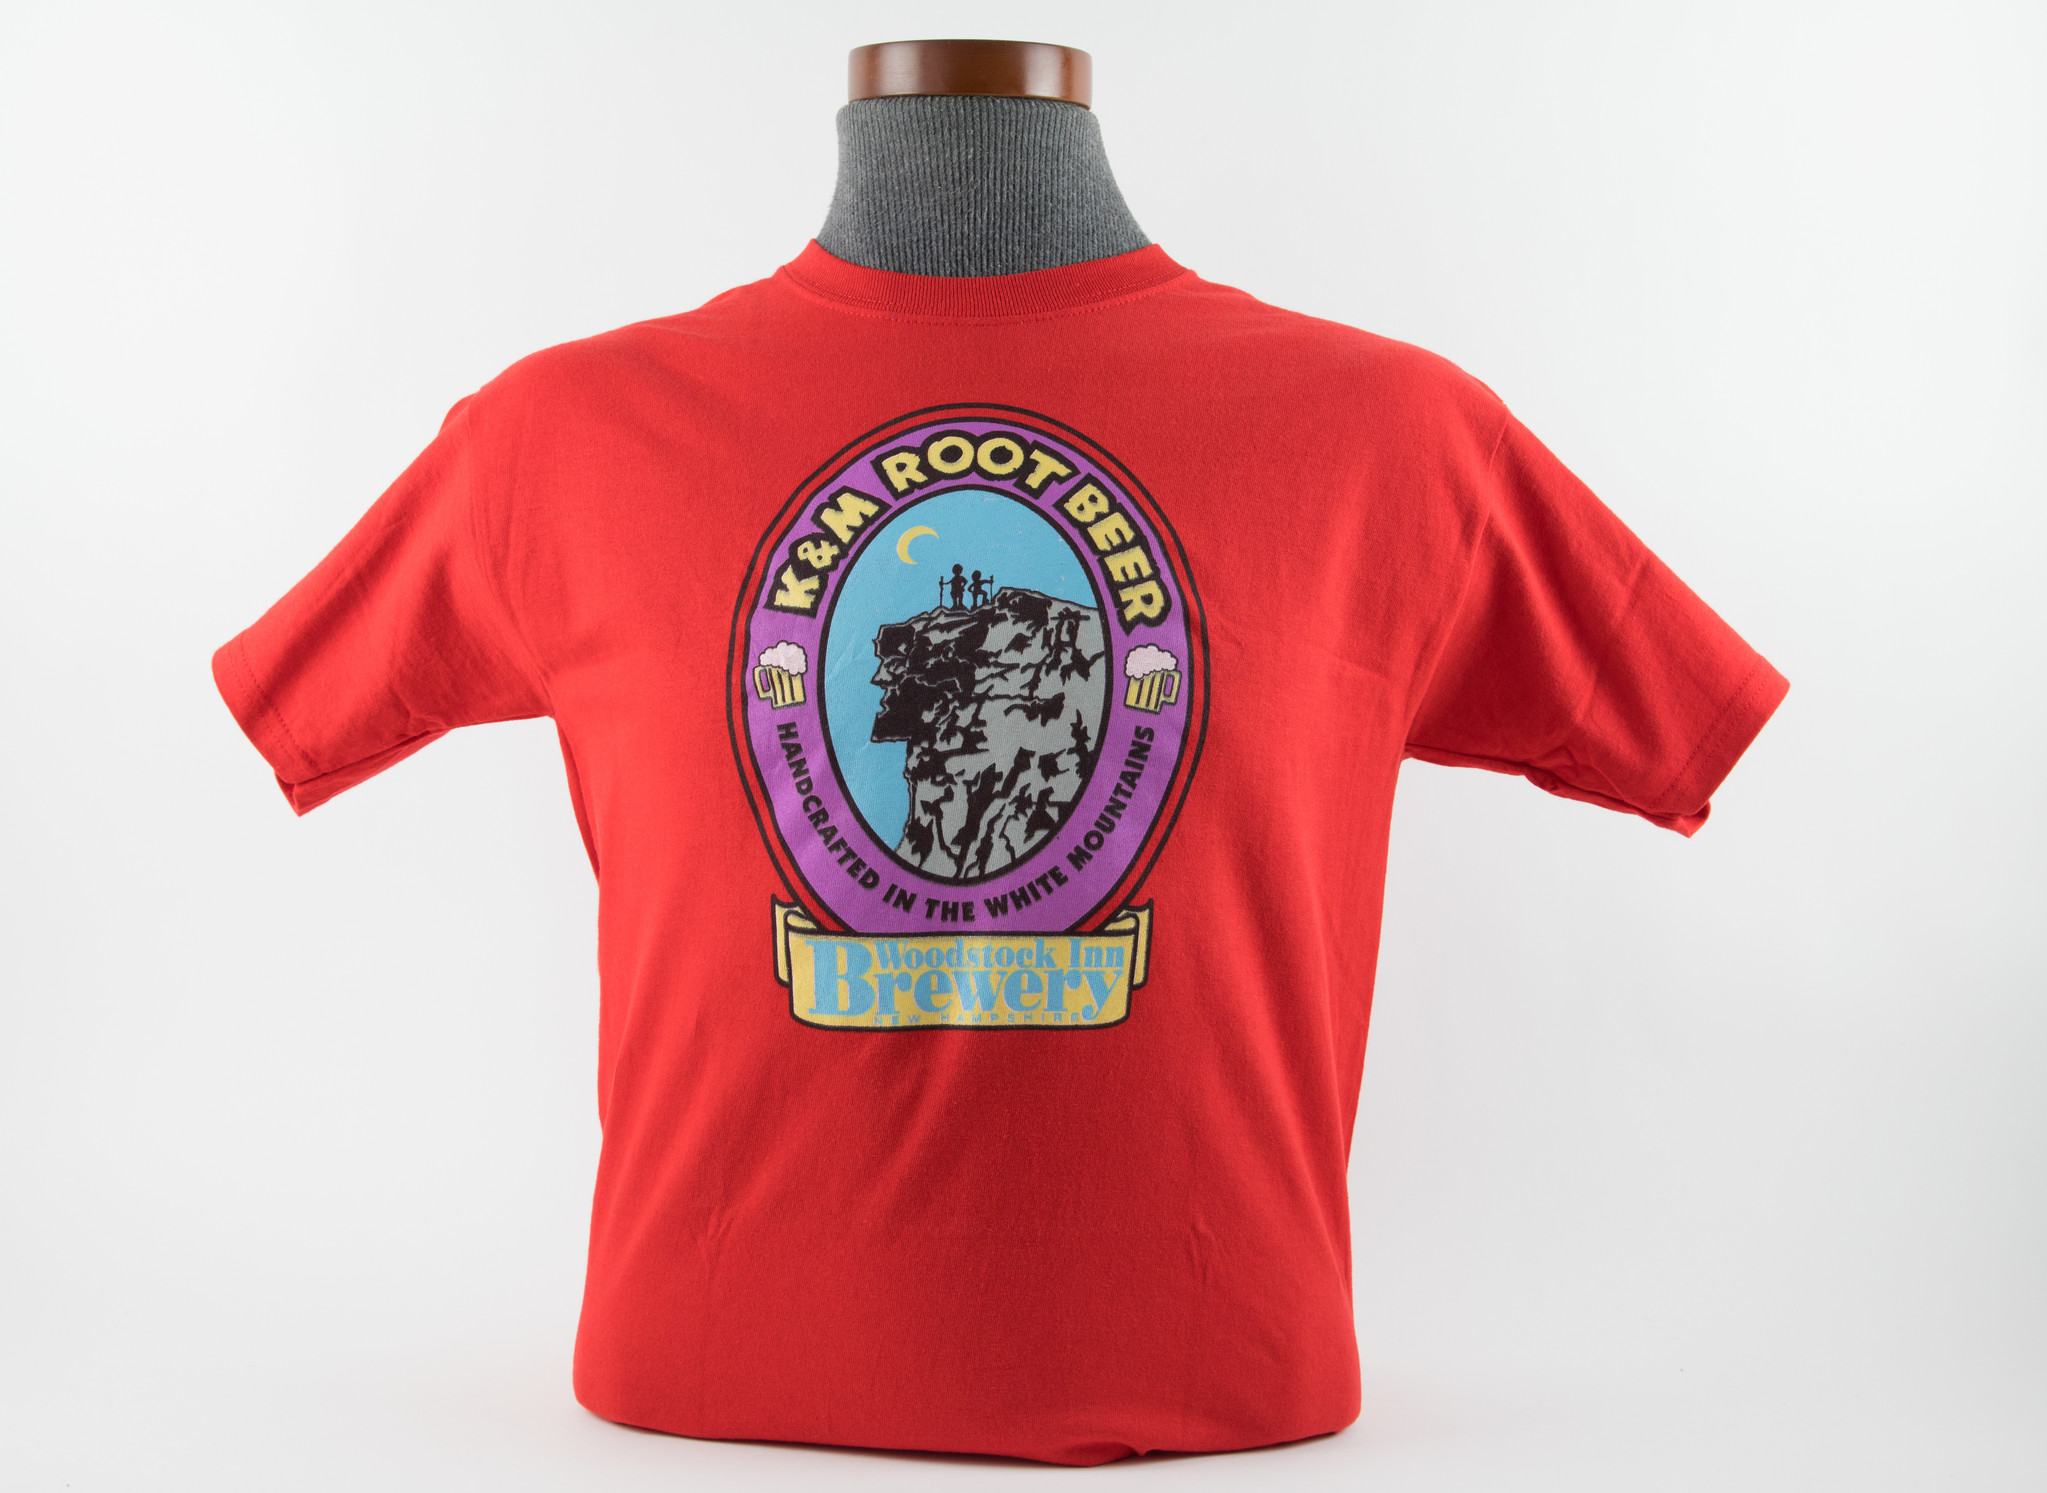 K & M Root Beer Kids Tshirt